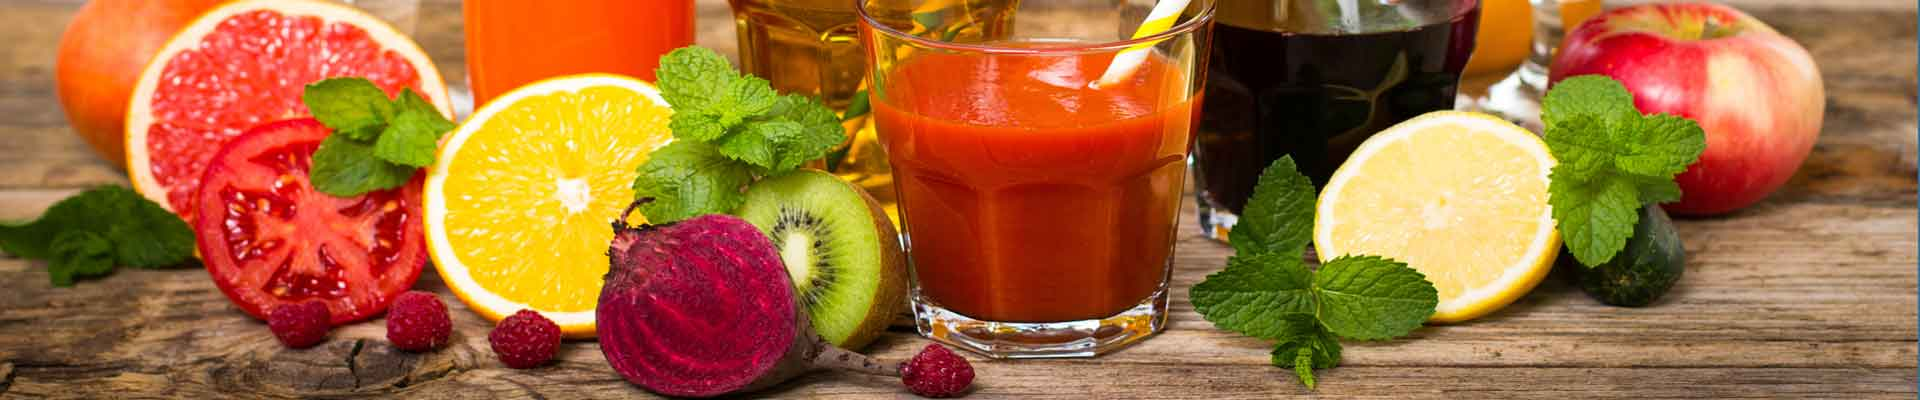 Why Juice Cleanse? [with Top Juice Recipes]